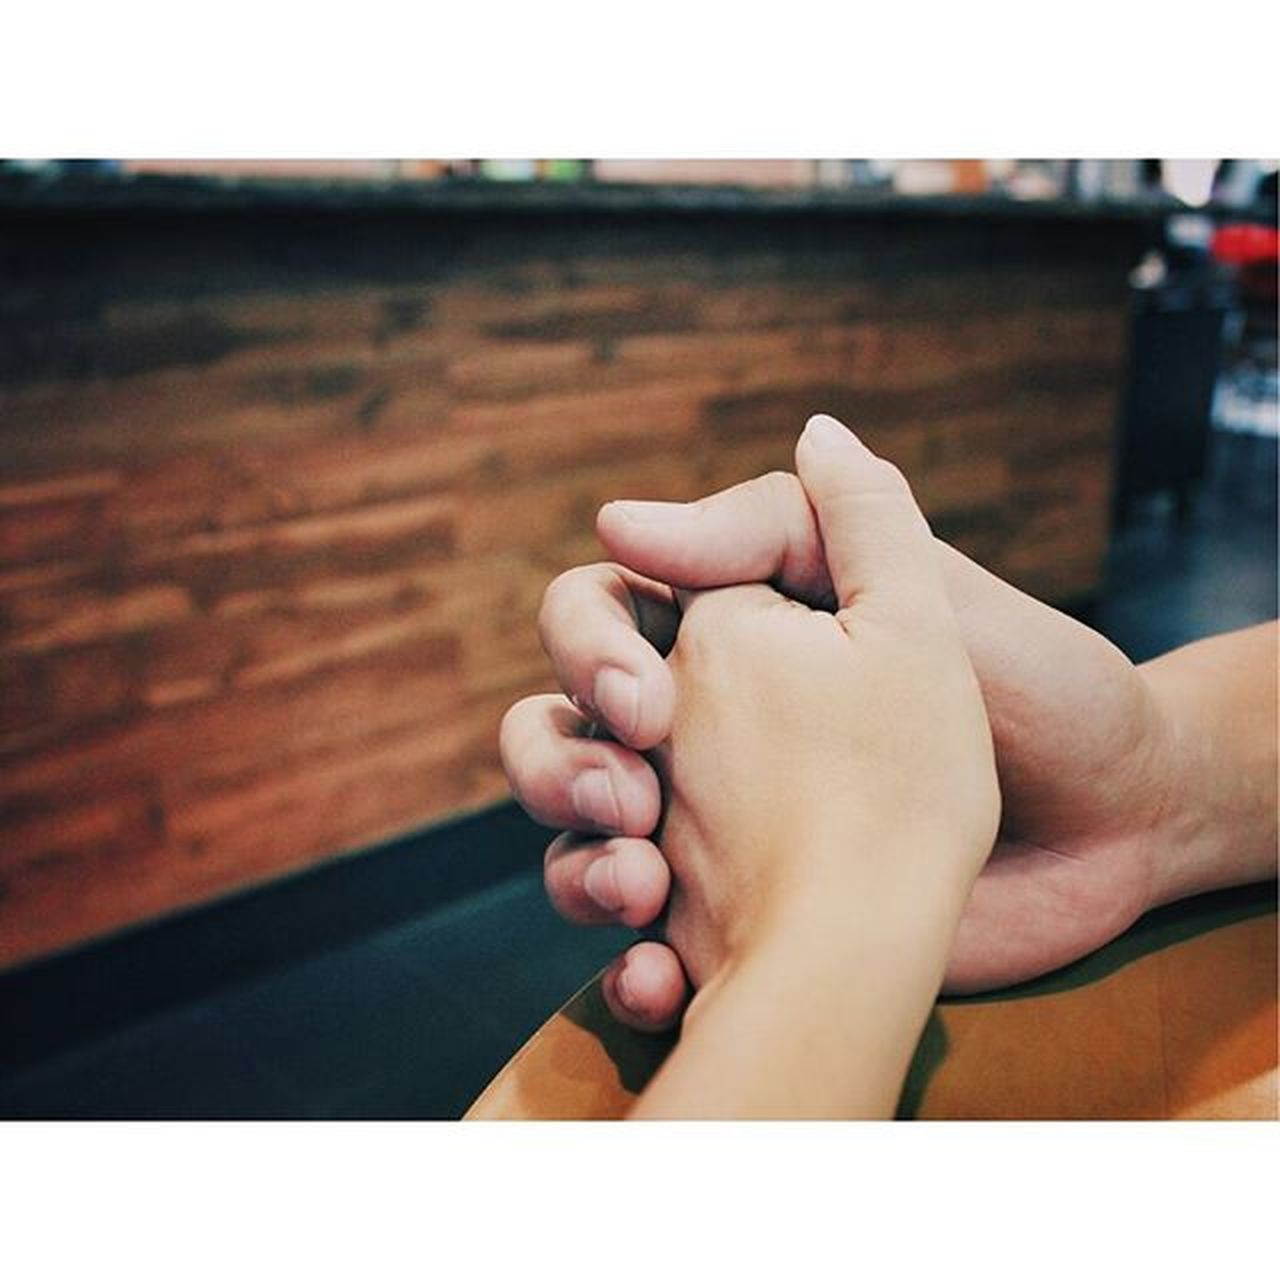 The only fingers I want to intertwine with mine are yours. Holdinghands COMFORTZONE Toloveandbeloved Toinfinityandbeyond Love Iwillneverletgo YouandI Vscogrid Vscocam Canon Canon_photos Canonphotography StillLife Stillphotography FriDATE